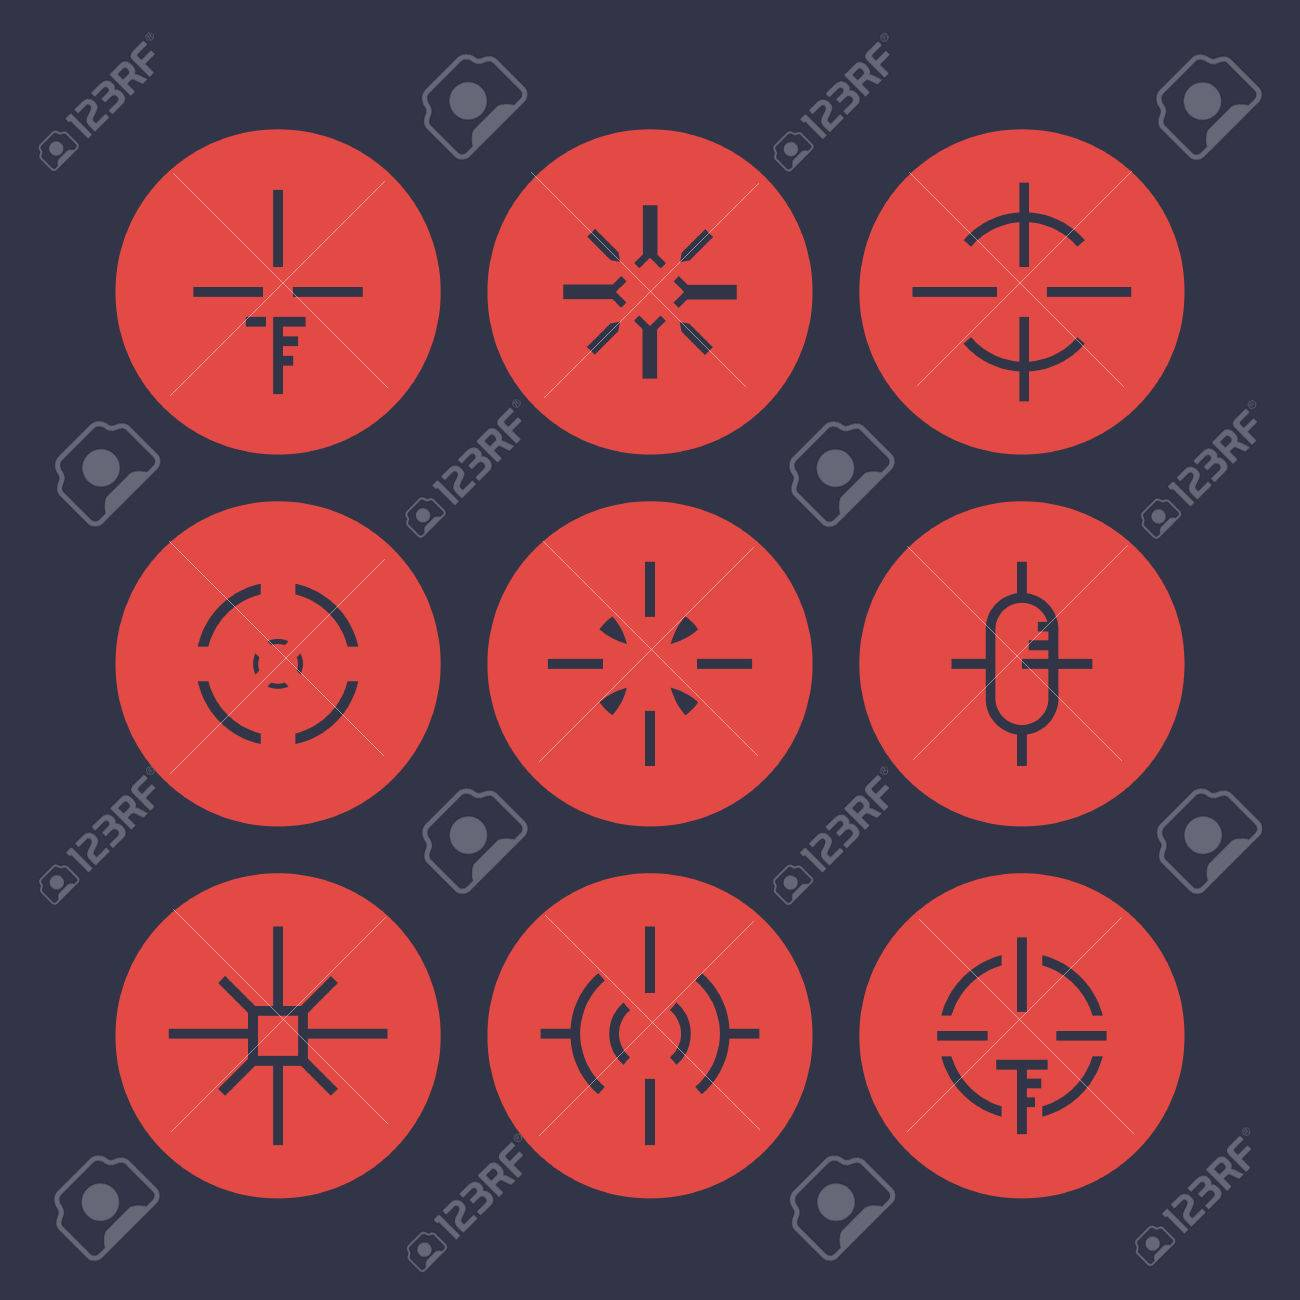 Crosshairs Elements For Game Design Set 2 Stock Vector 67271636